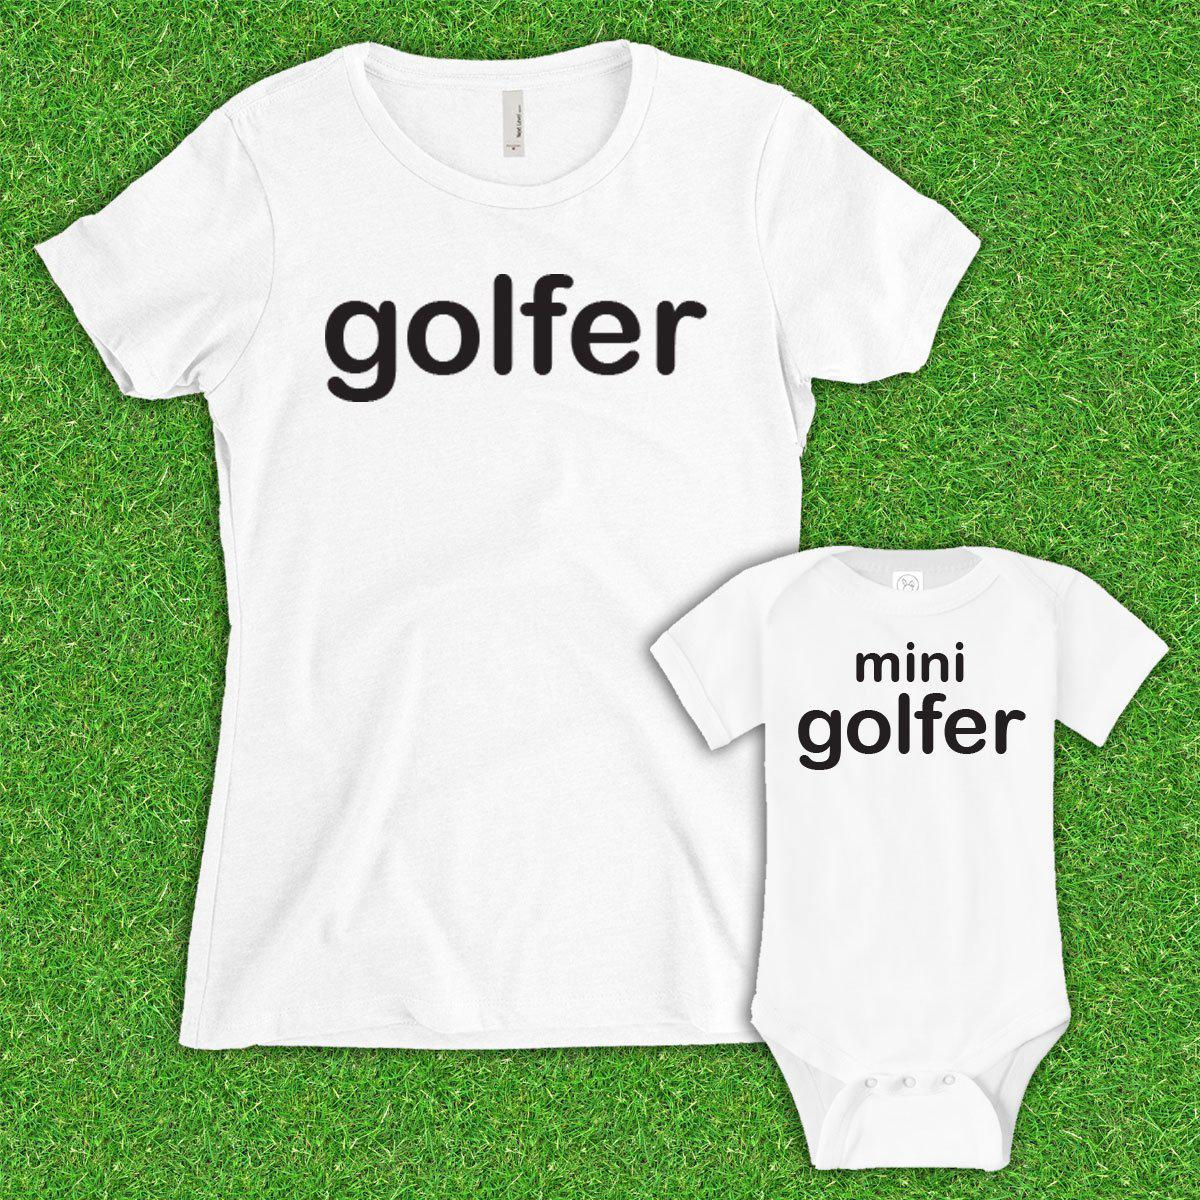 Mom Golfer, Mini Golfer (Matching Set) - White